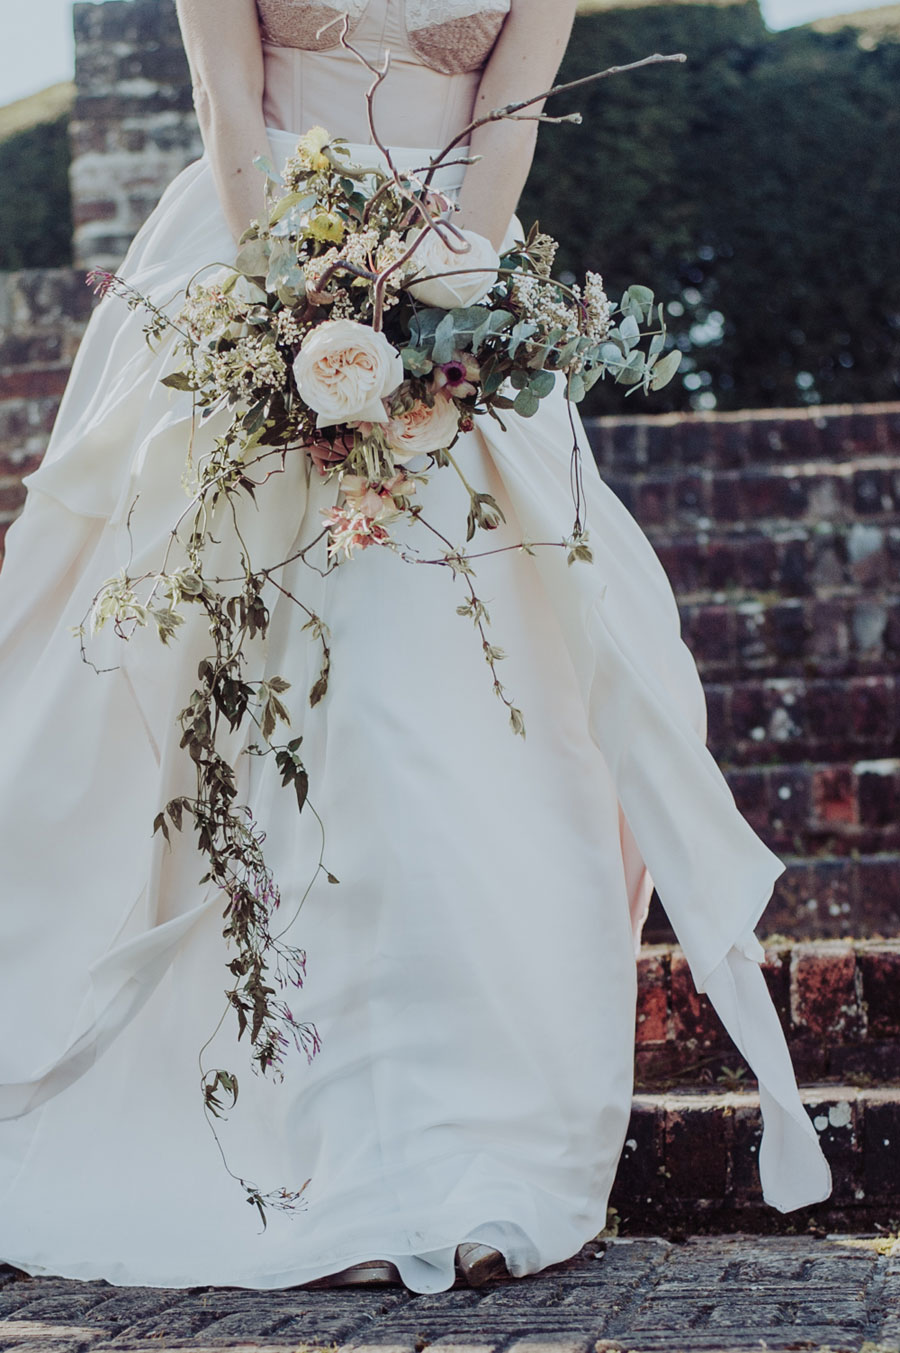 Dreamy Wild Ombre Inspired Bridal Shoot!